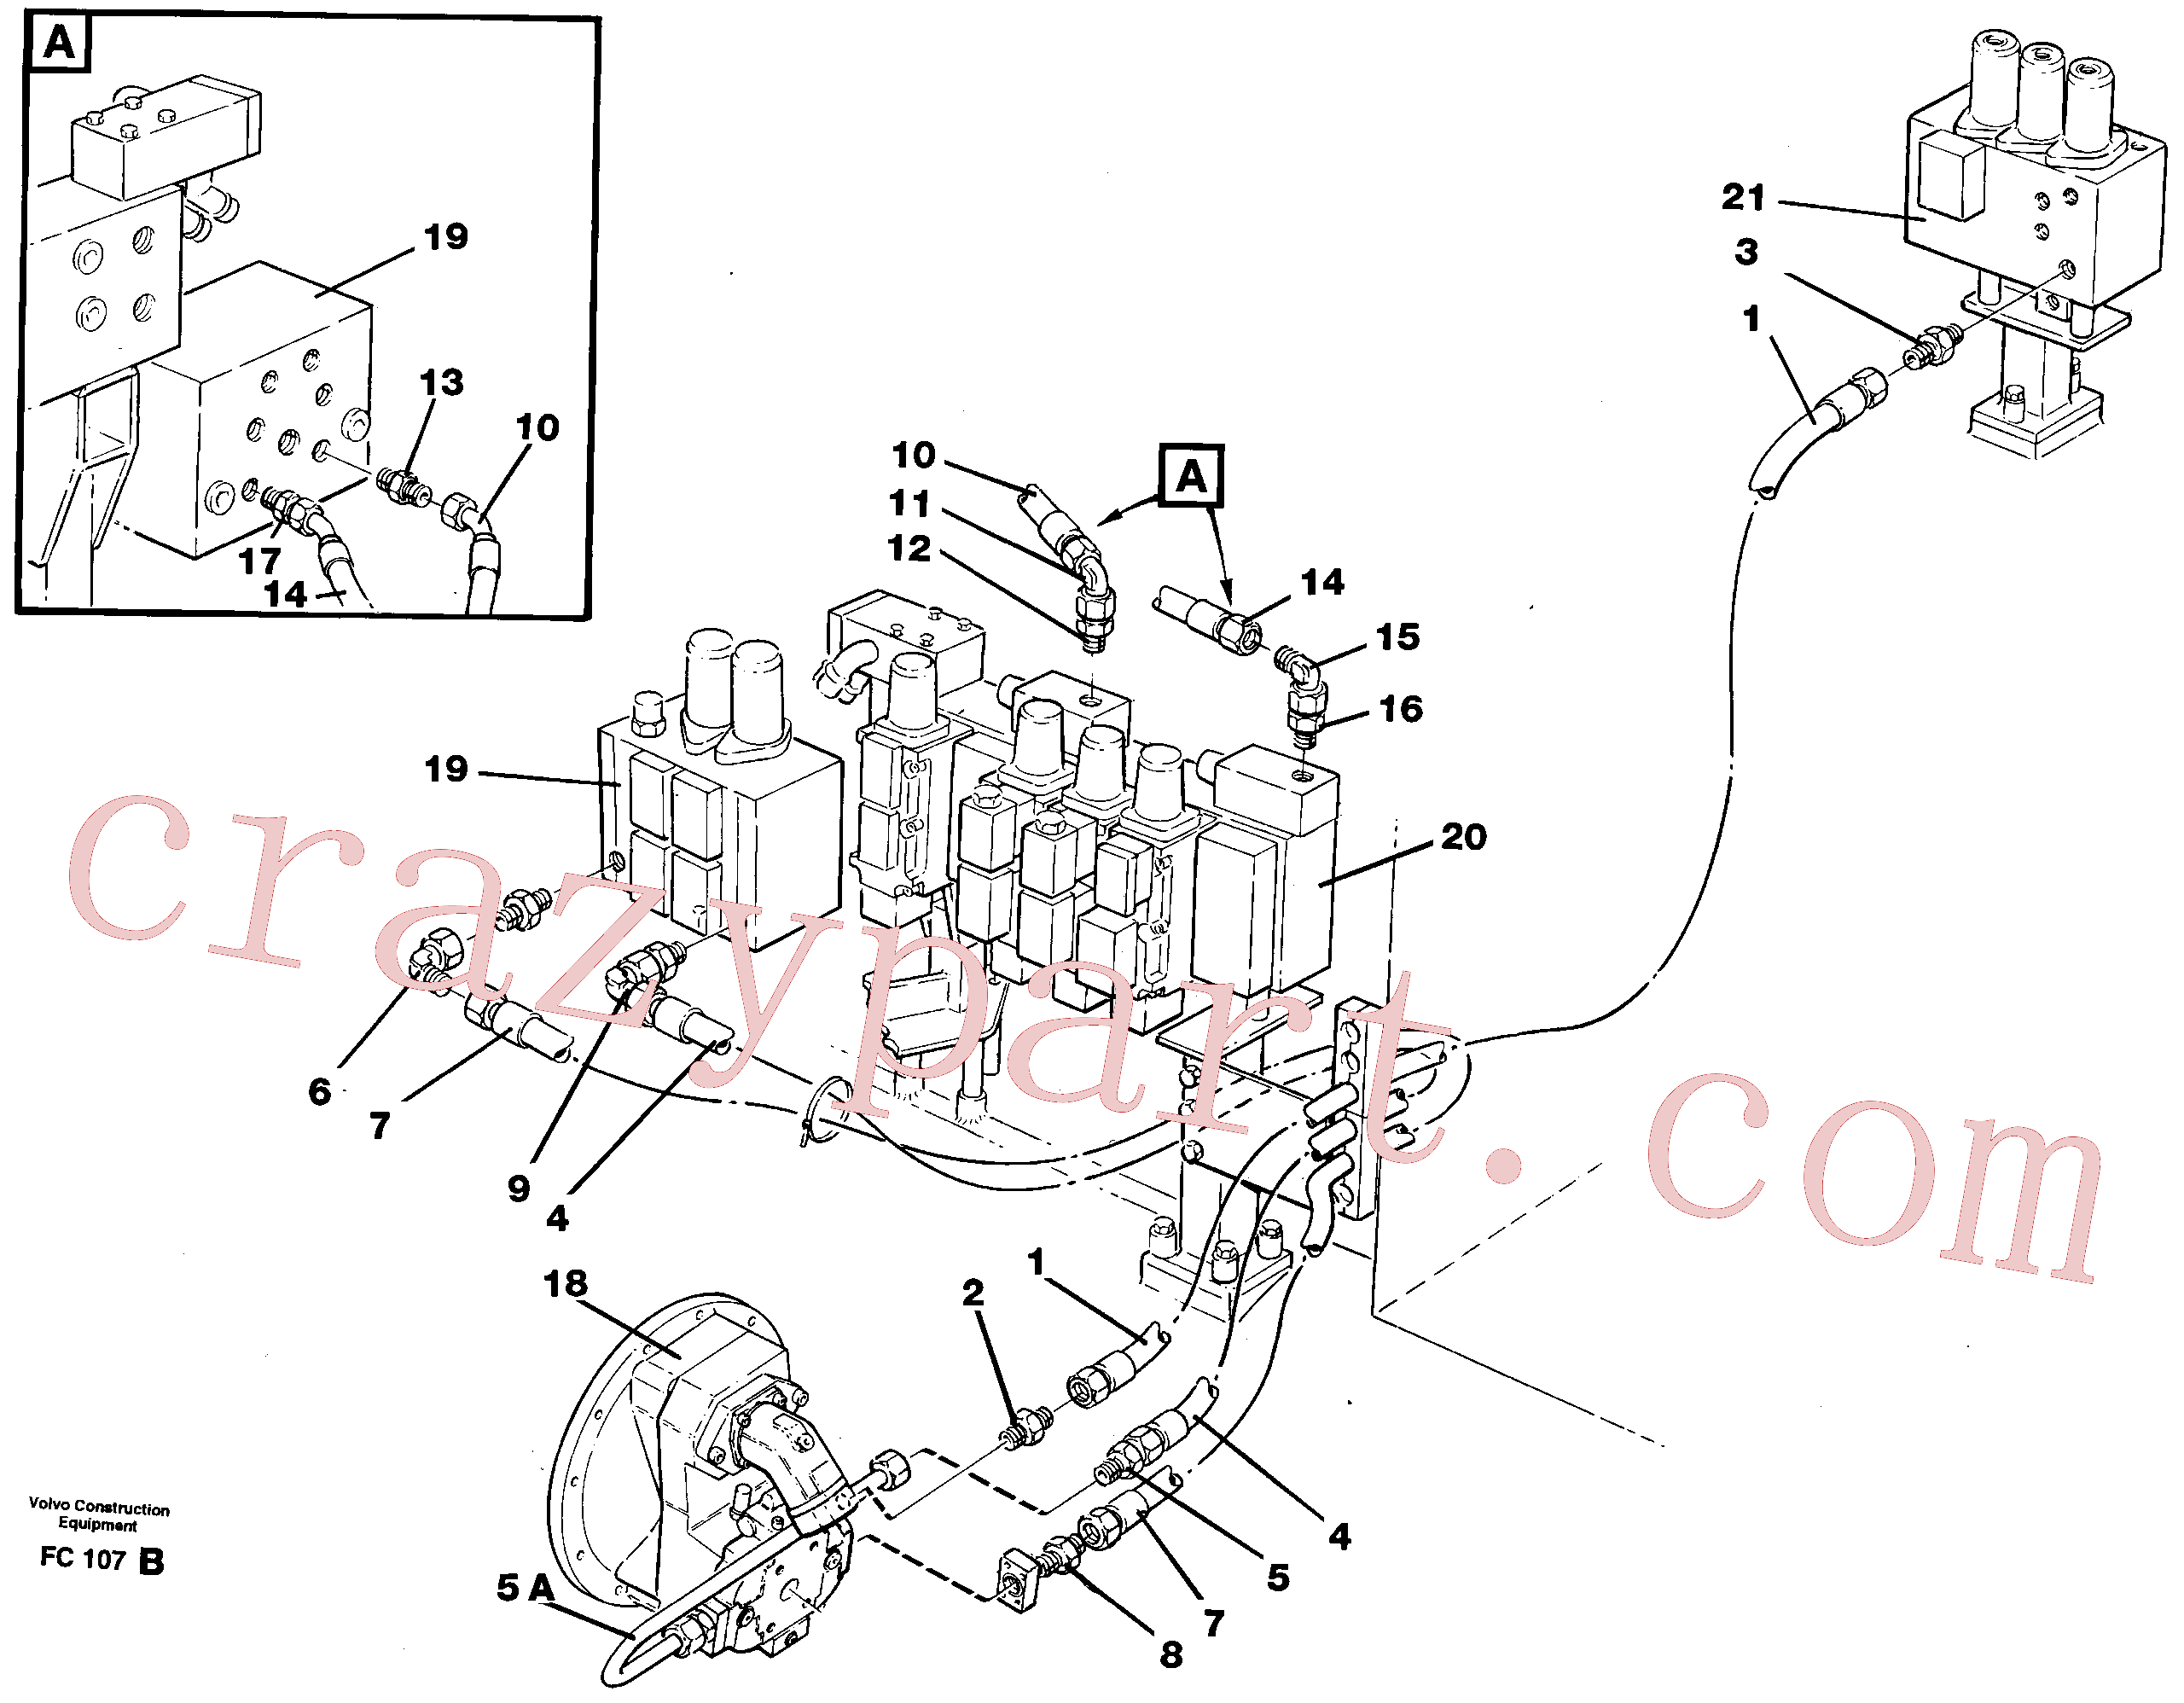 VOE14258364 for Volvo Hydraulic system, feed line(FC107B assembly)